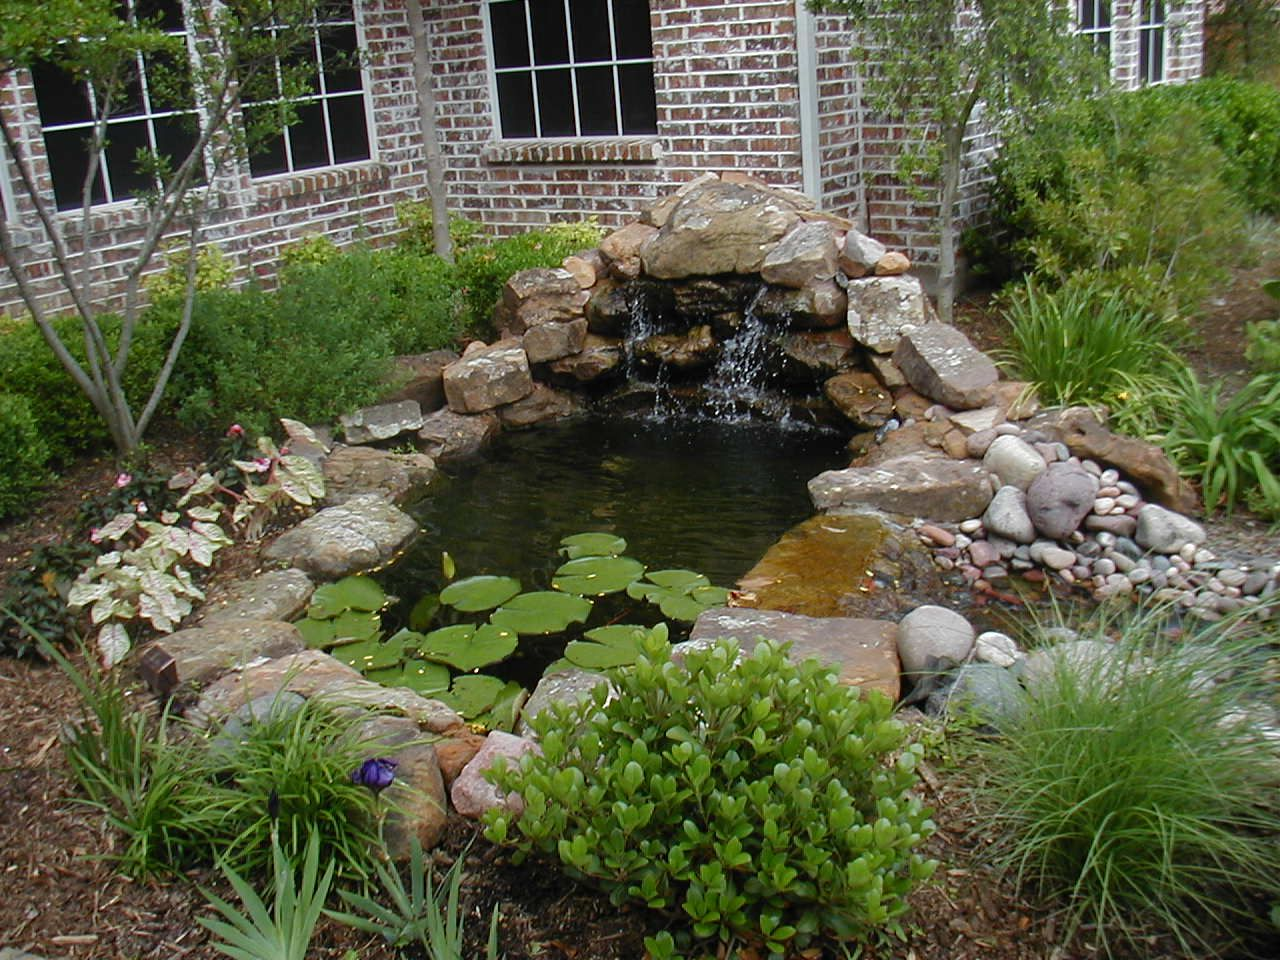 21 Garden Design Ideas Small Ponds Turning Your Backyard Landscaping Into Tranquil Retreats Garden Pond Design Water Features In The Garden Ponds Backyard